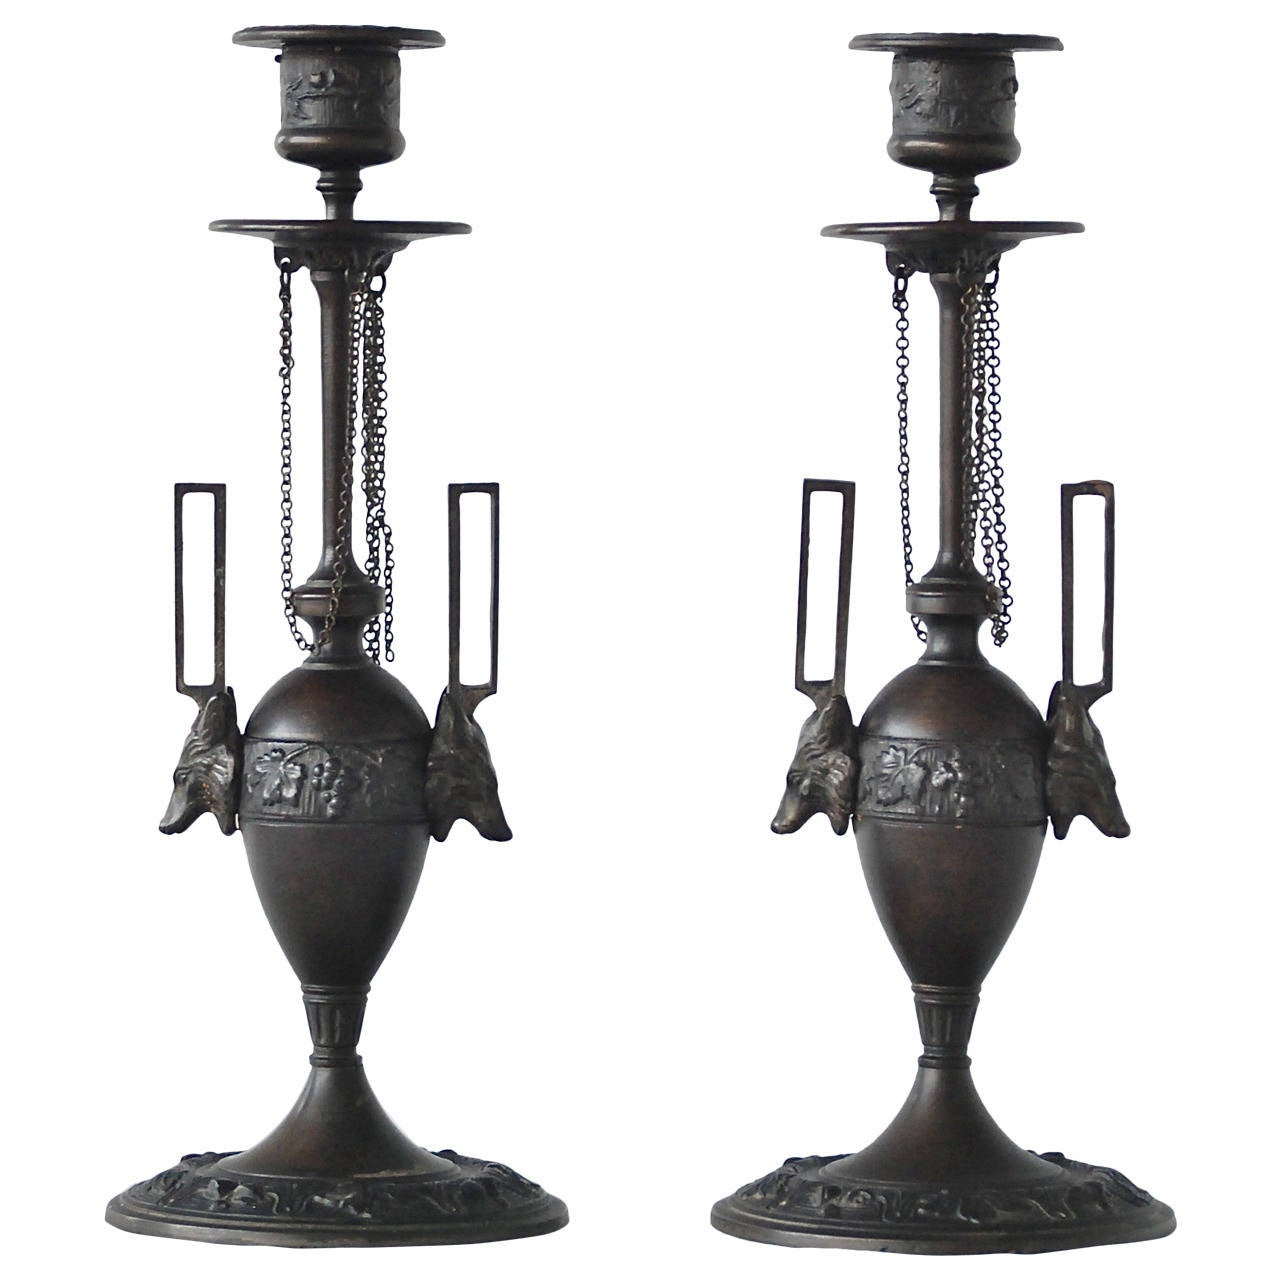 Pair of Candleholders by F. L. Vombach 1